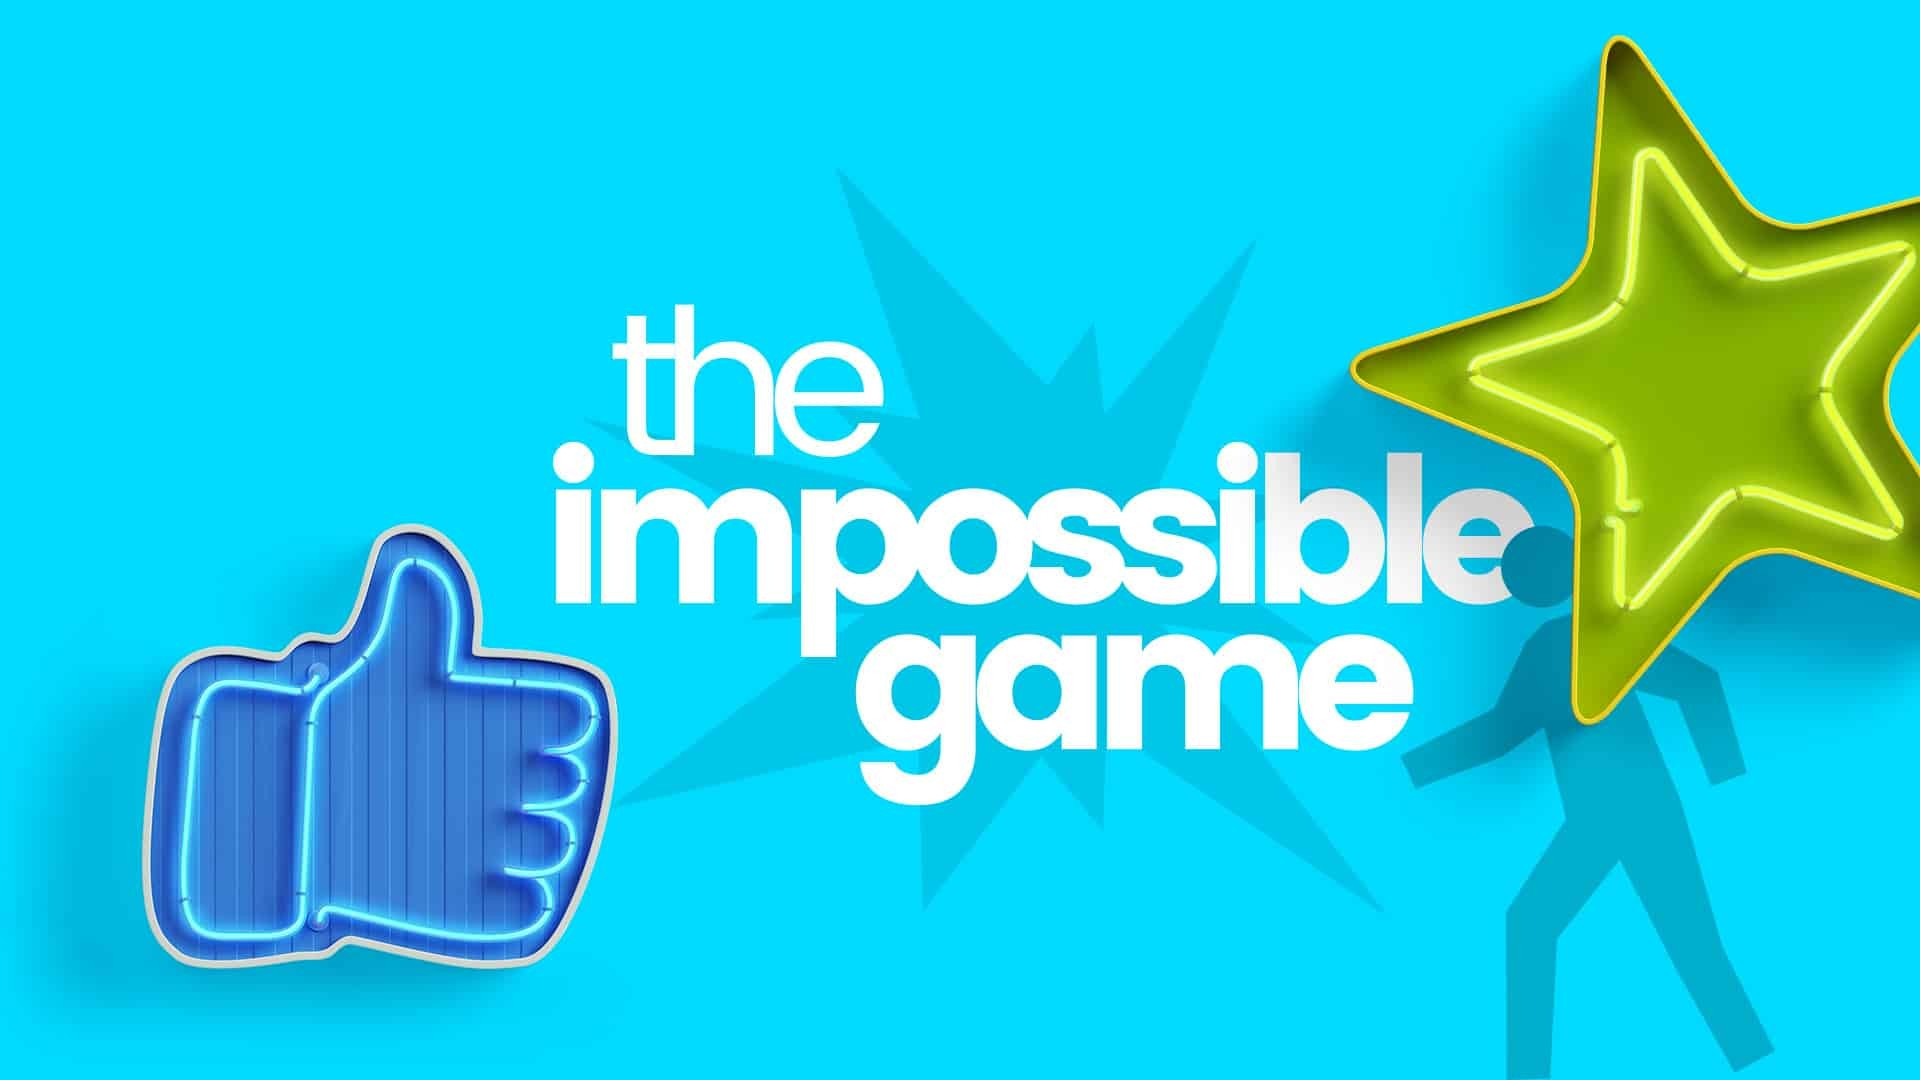 Impossible games free